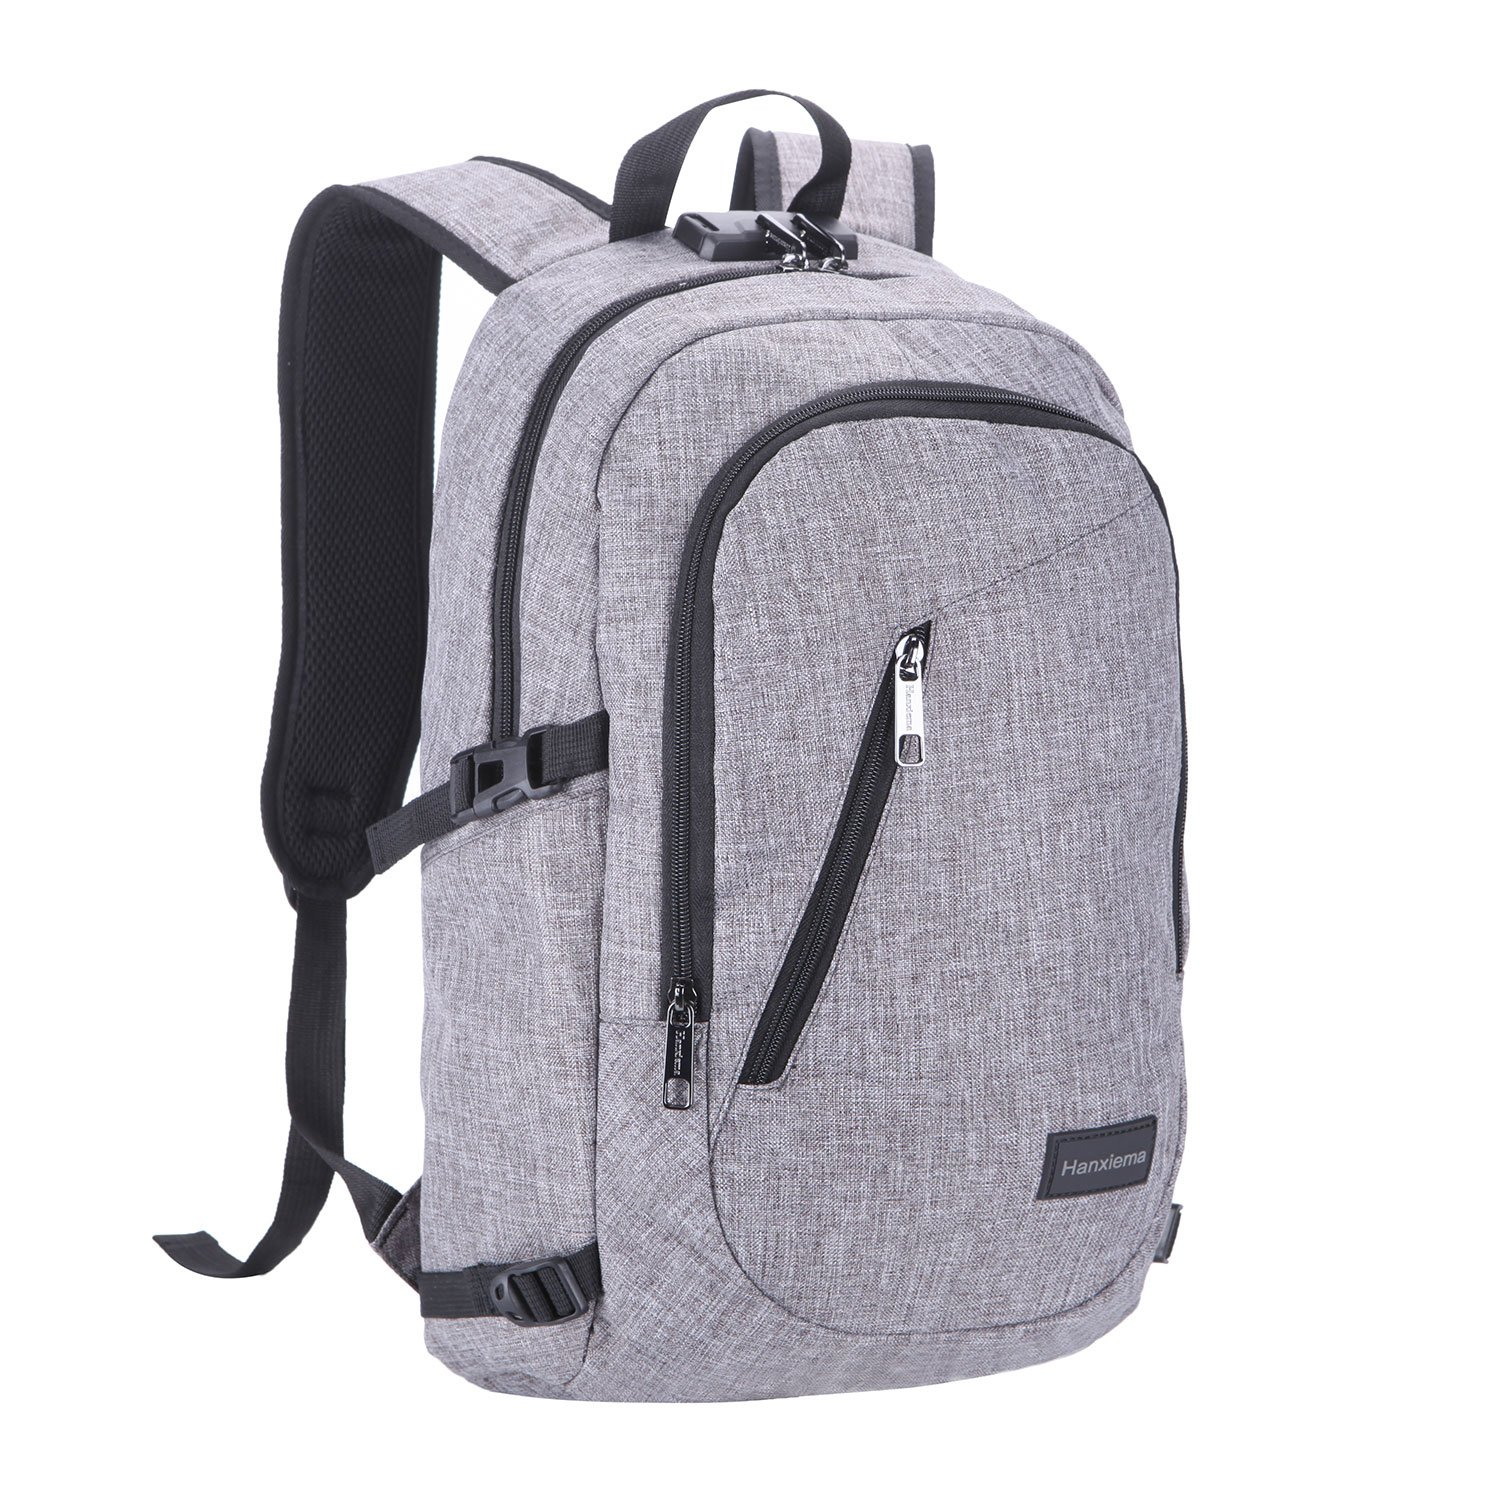 a57c666cee3 durable service Hanxiema Travel Laptop Backpack,Business Laptop Backpack  with USB Charging Port ,Water